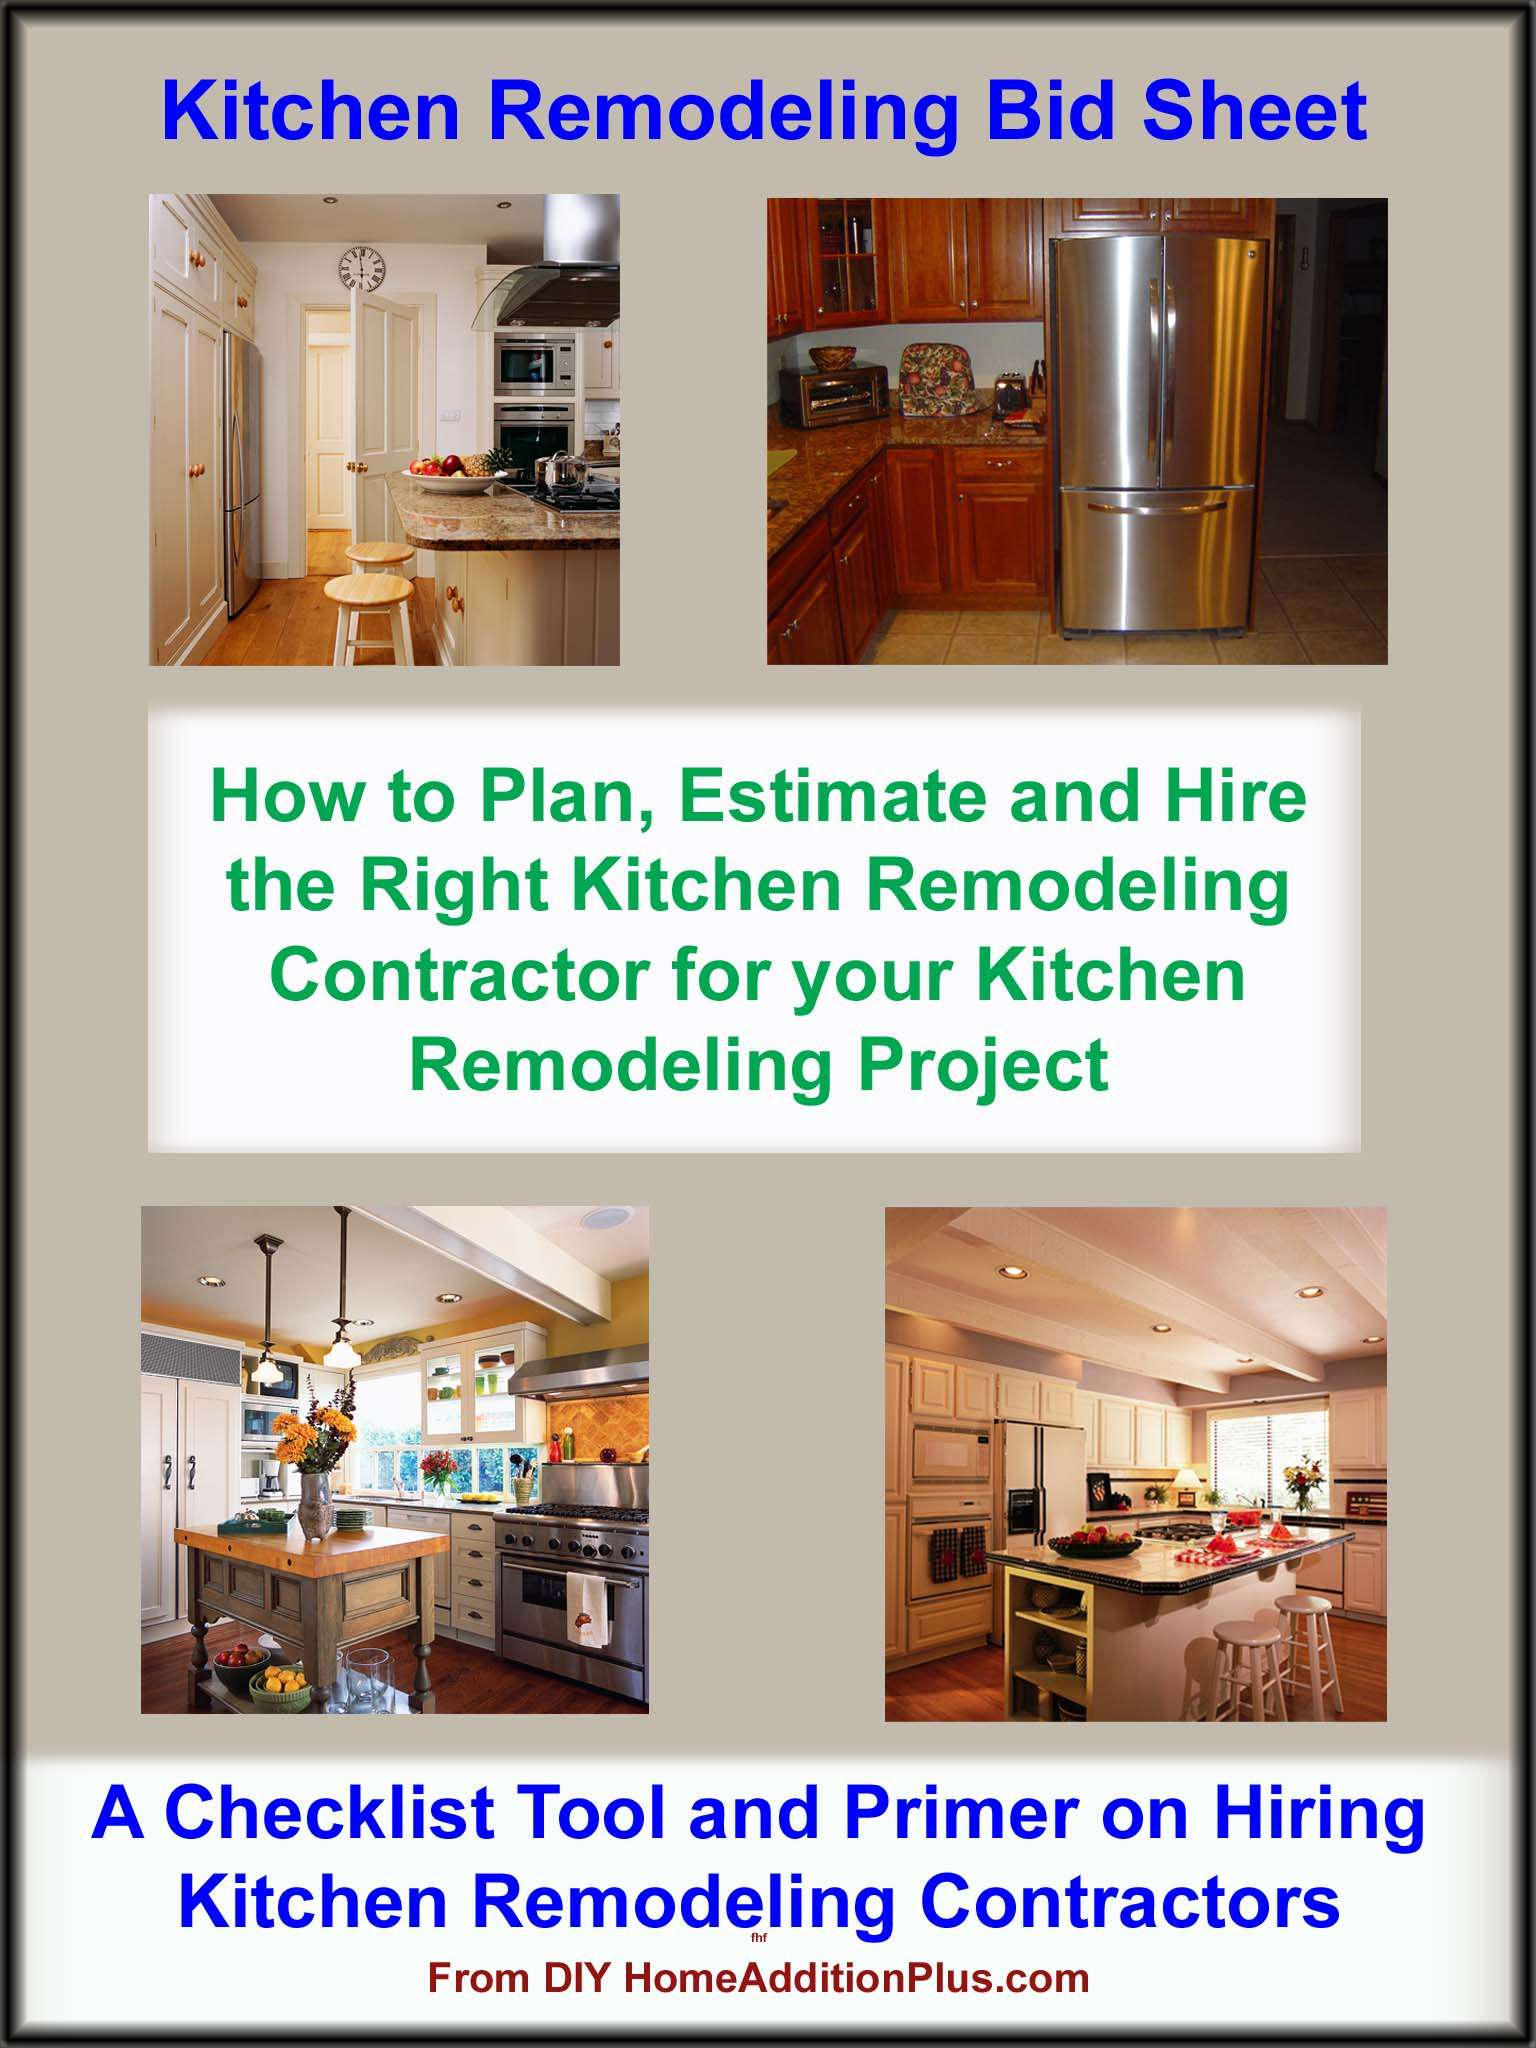 Kitchen Remodeling Bid Sheet